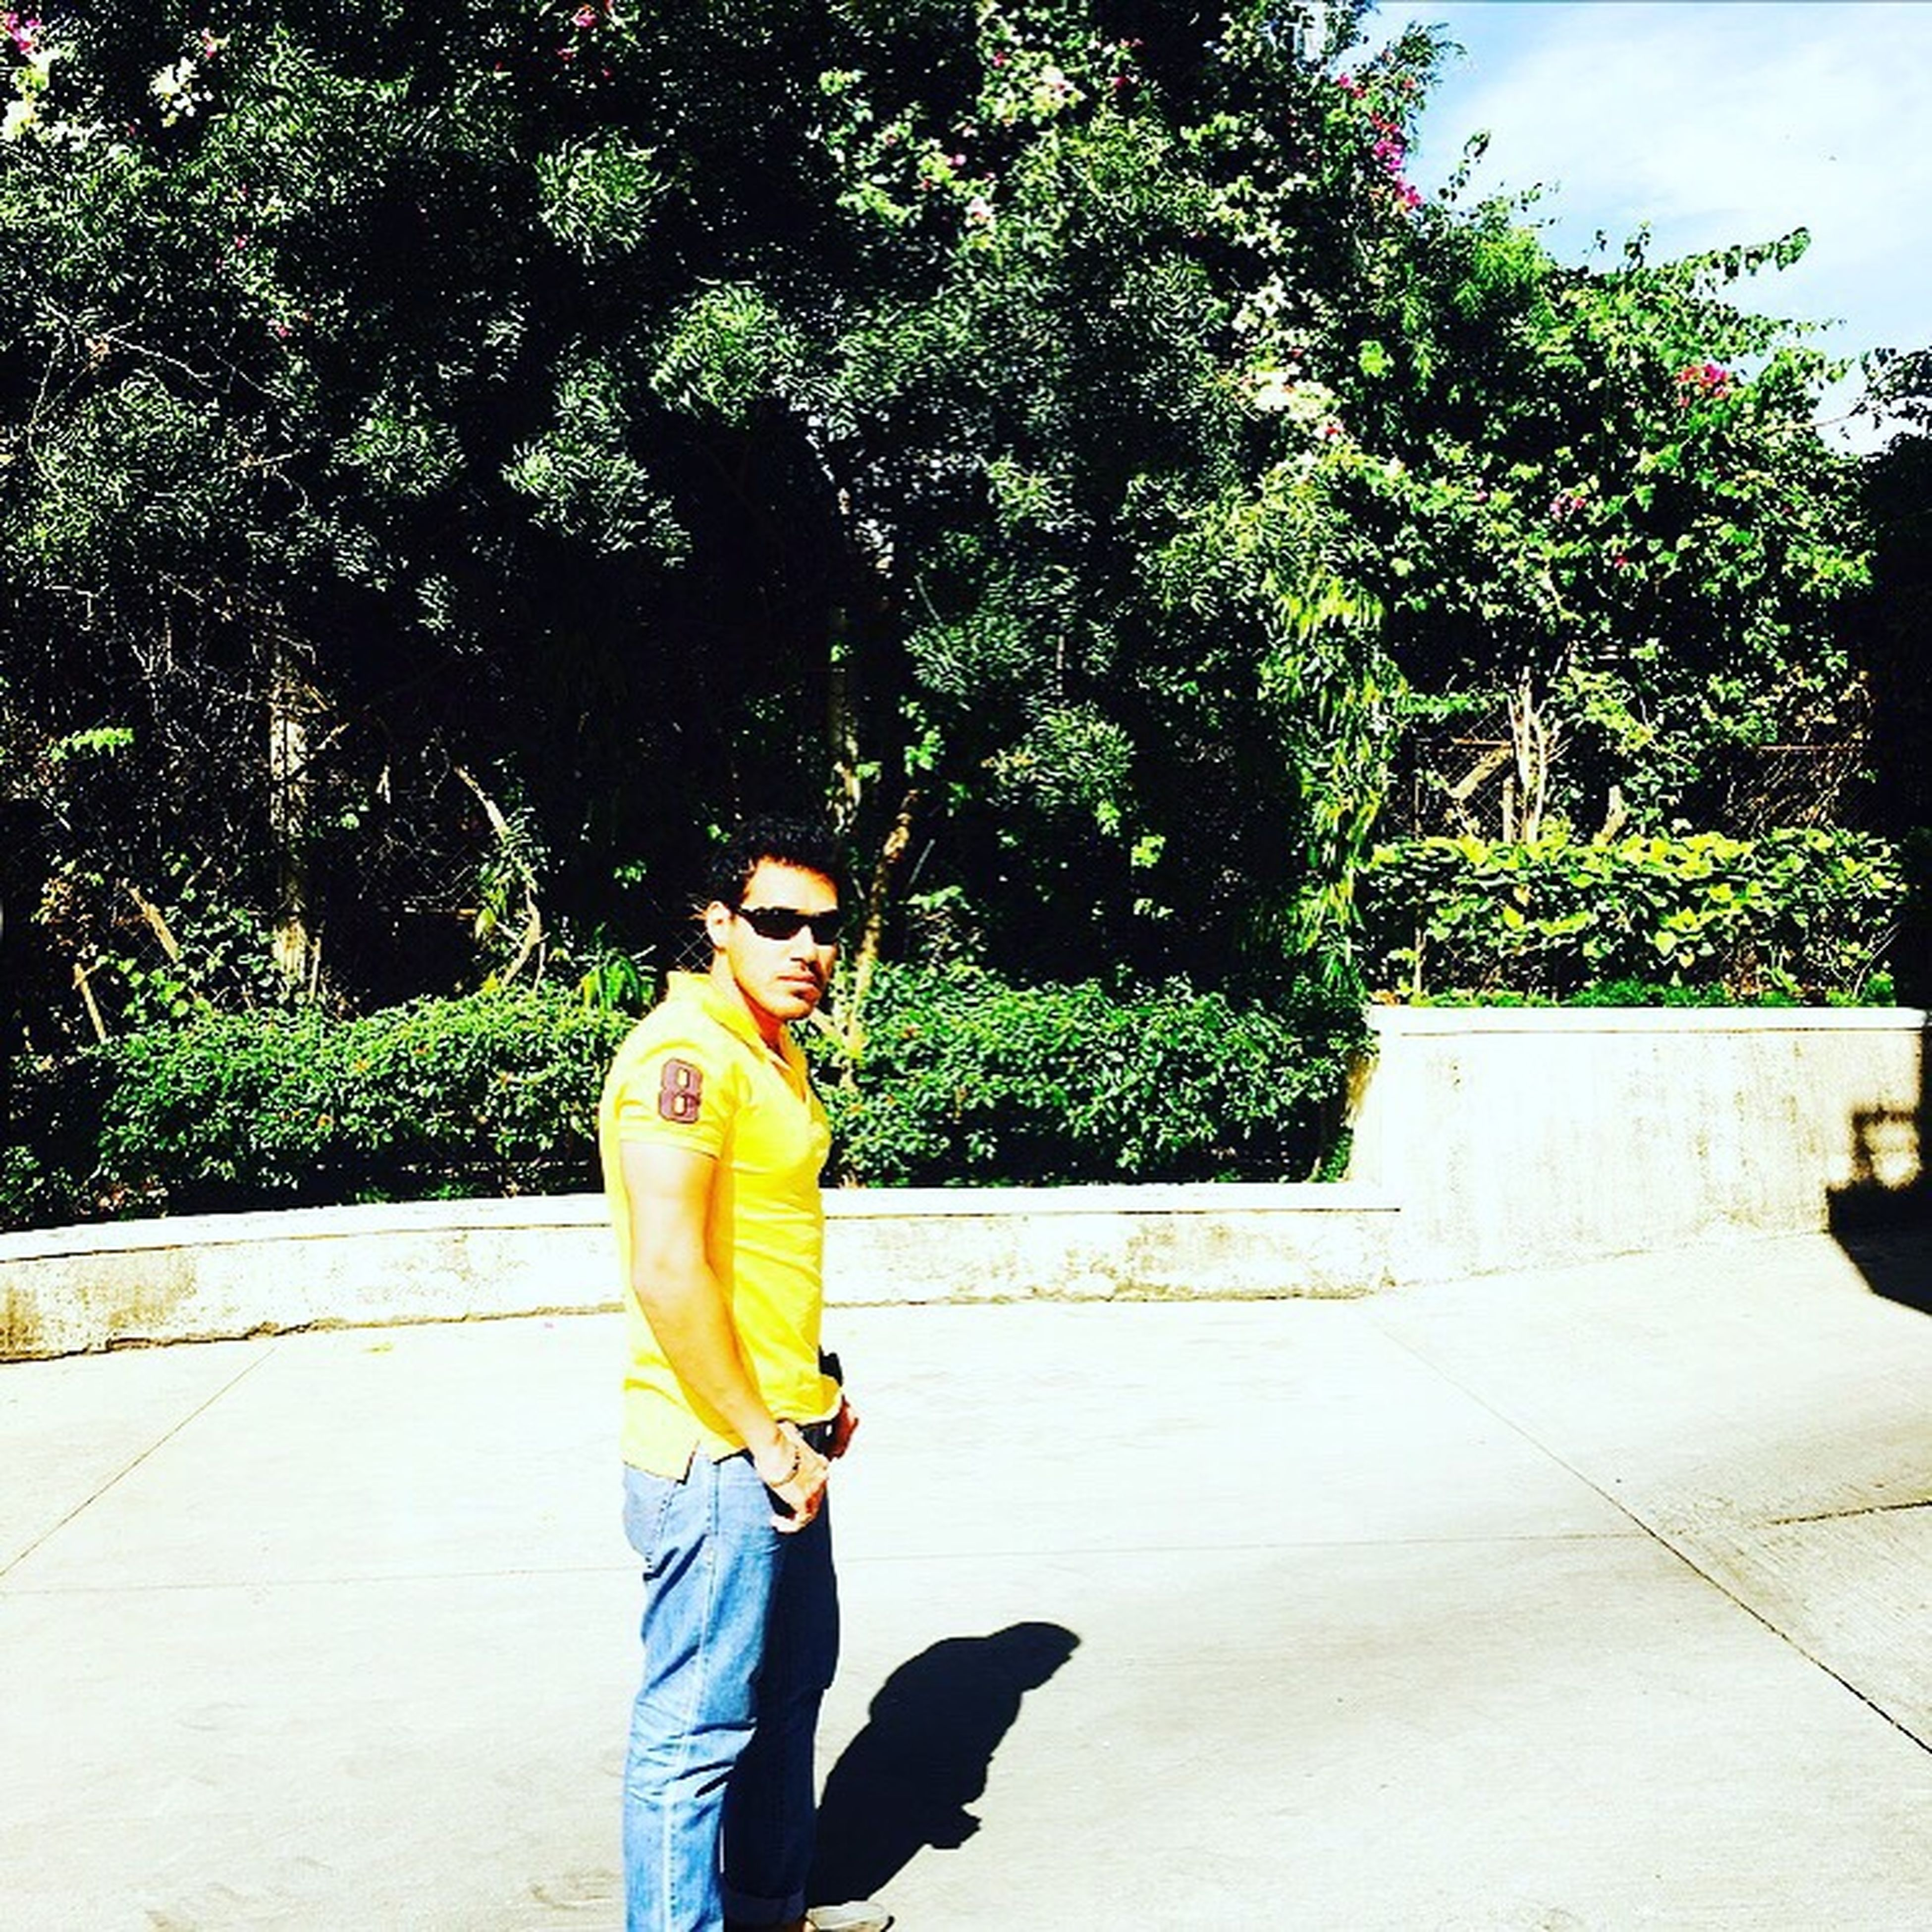 tree, one person, yellow, outdoors, standing, sunglasses, leisure activity, lifestyles, real people, day, young adult, nature